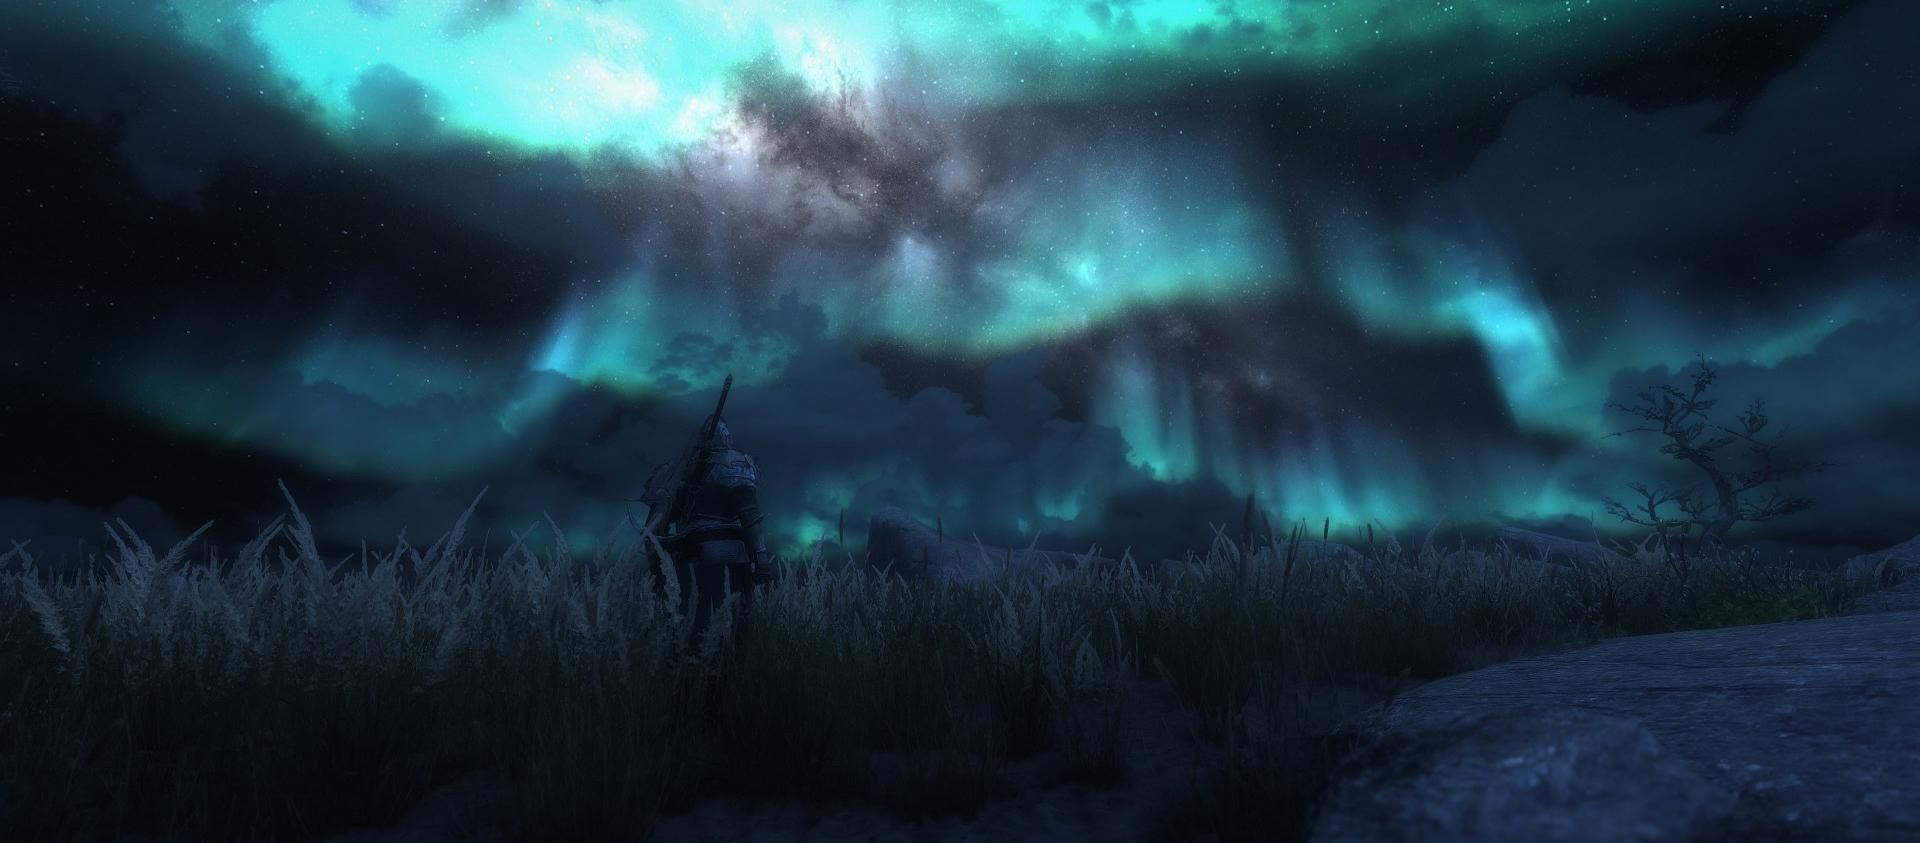 Anyone else just stand and watch the Aurora Borealis? #games #Skyrim #elderscrolls #BE3 #gaming #videogames #Concours #NGC